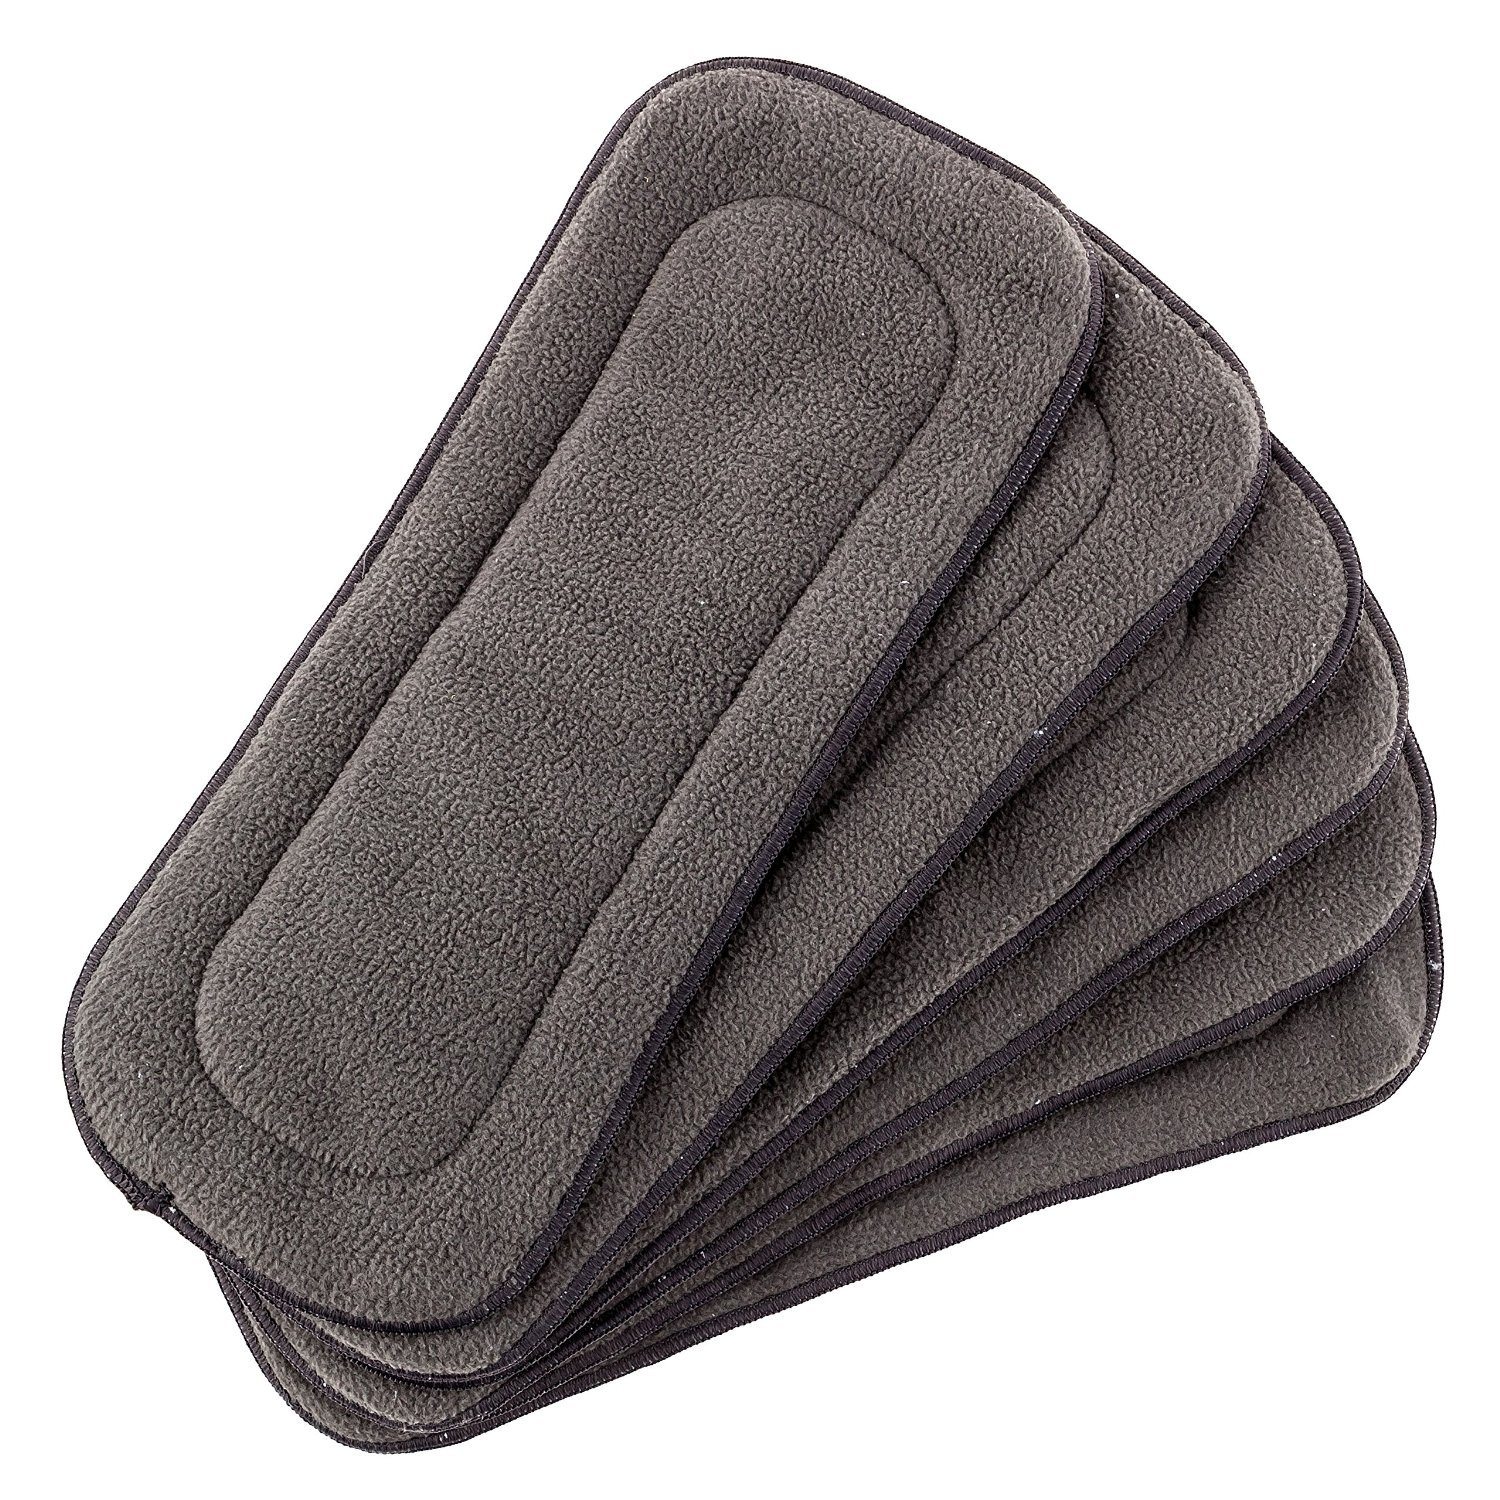 love my Baby 5 Layer Charcoal Bamboo Inserts Reusable Liners for Cloth Diapers Inserts 6 pieces by love my (Image #4)